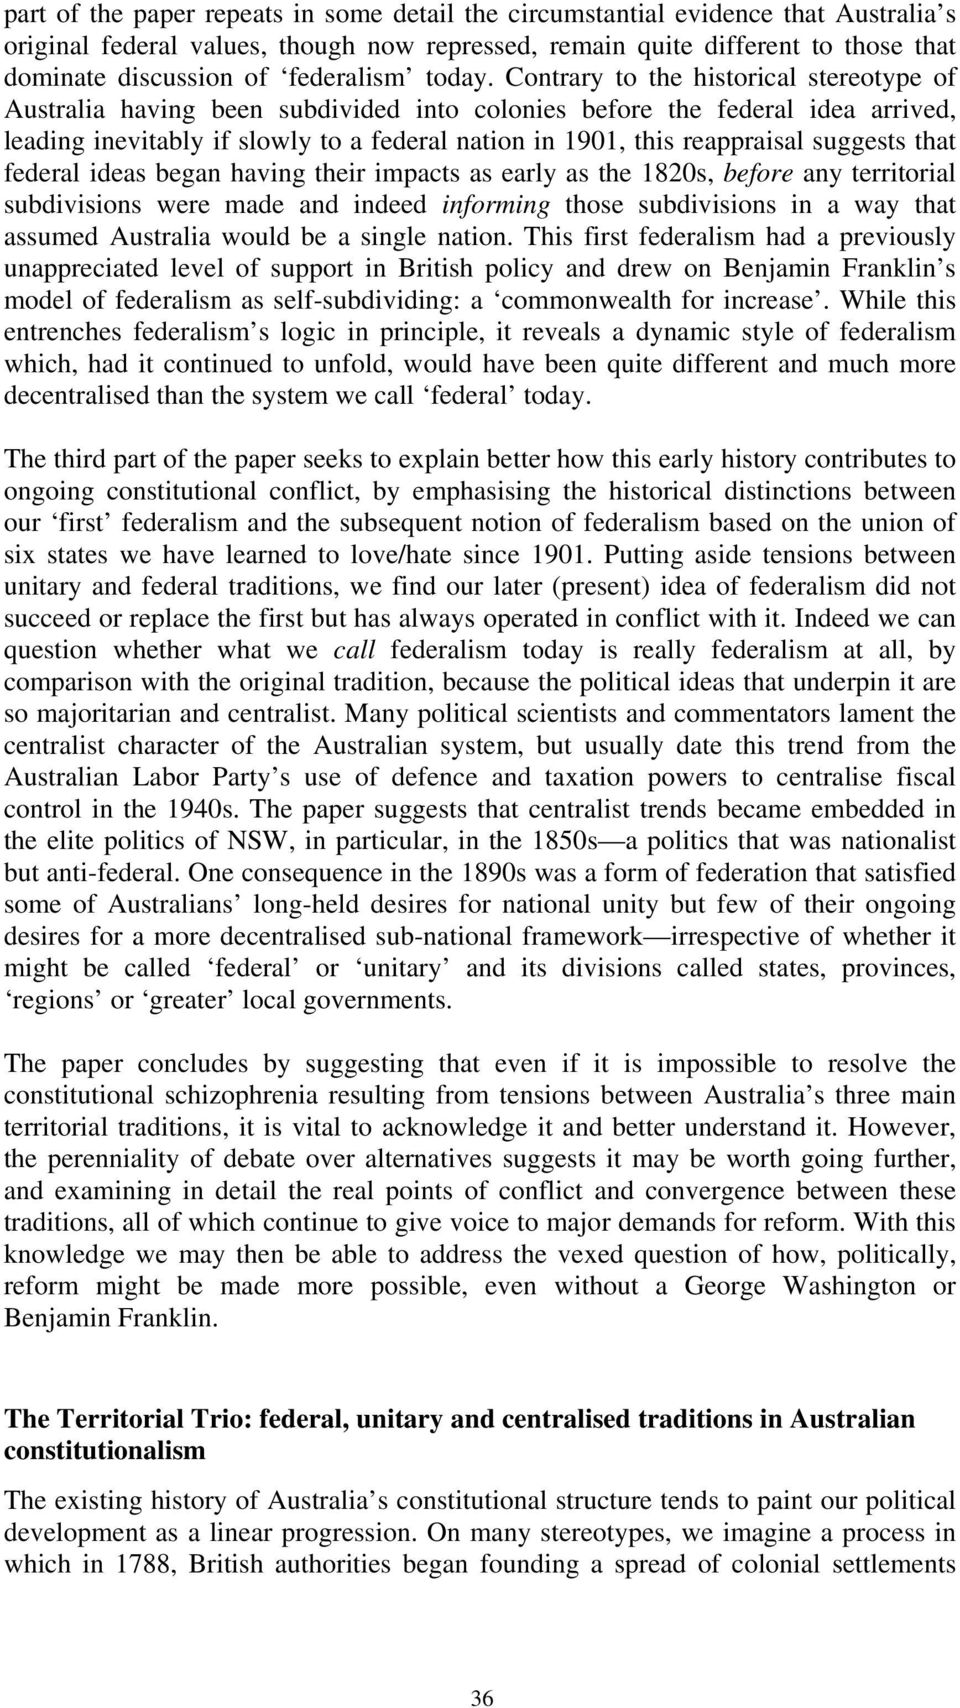 Contrary to the historical stereotype of Australia having been subdivided into colonies before the federal idea arrived, leading inevitably if slowly to a federal nation in 1901, this reappraisal